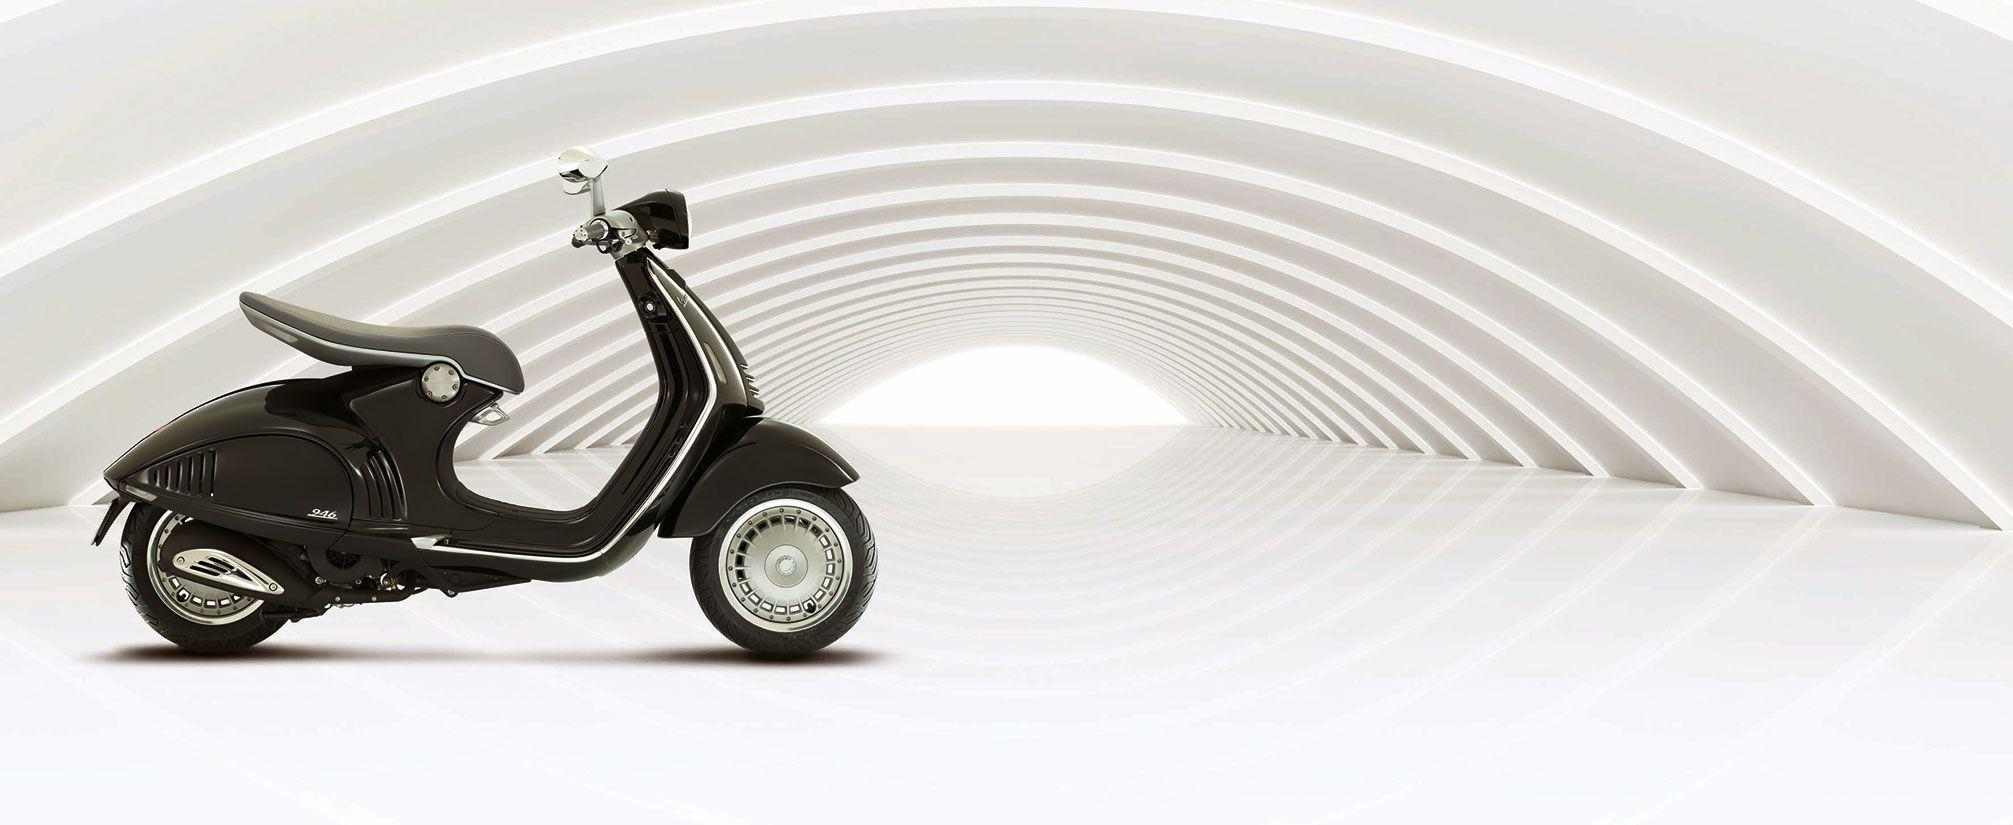 Vespa 946i Wallpaper | Download High Quality Resolution Wallpapers